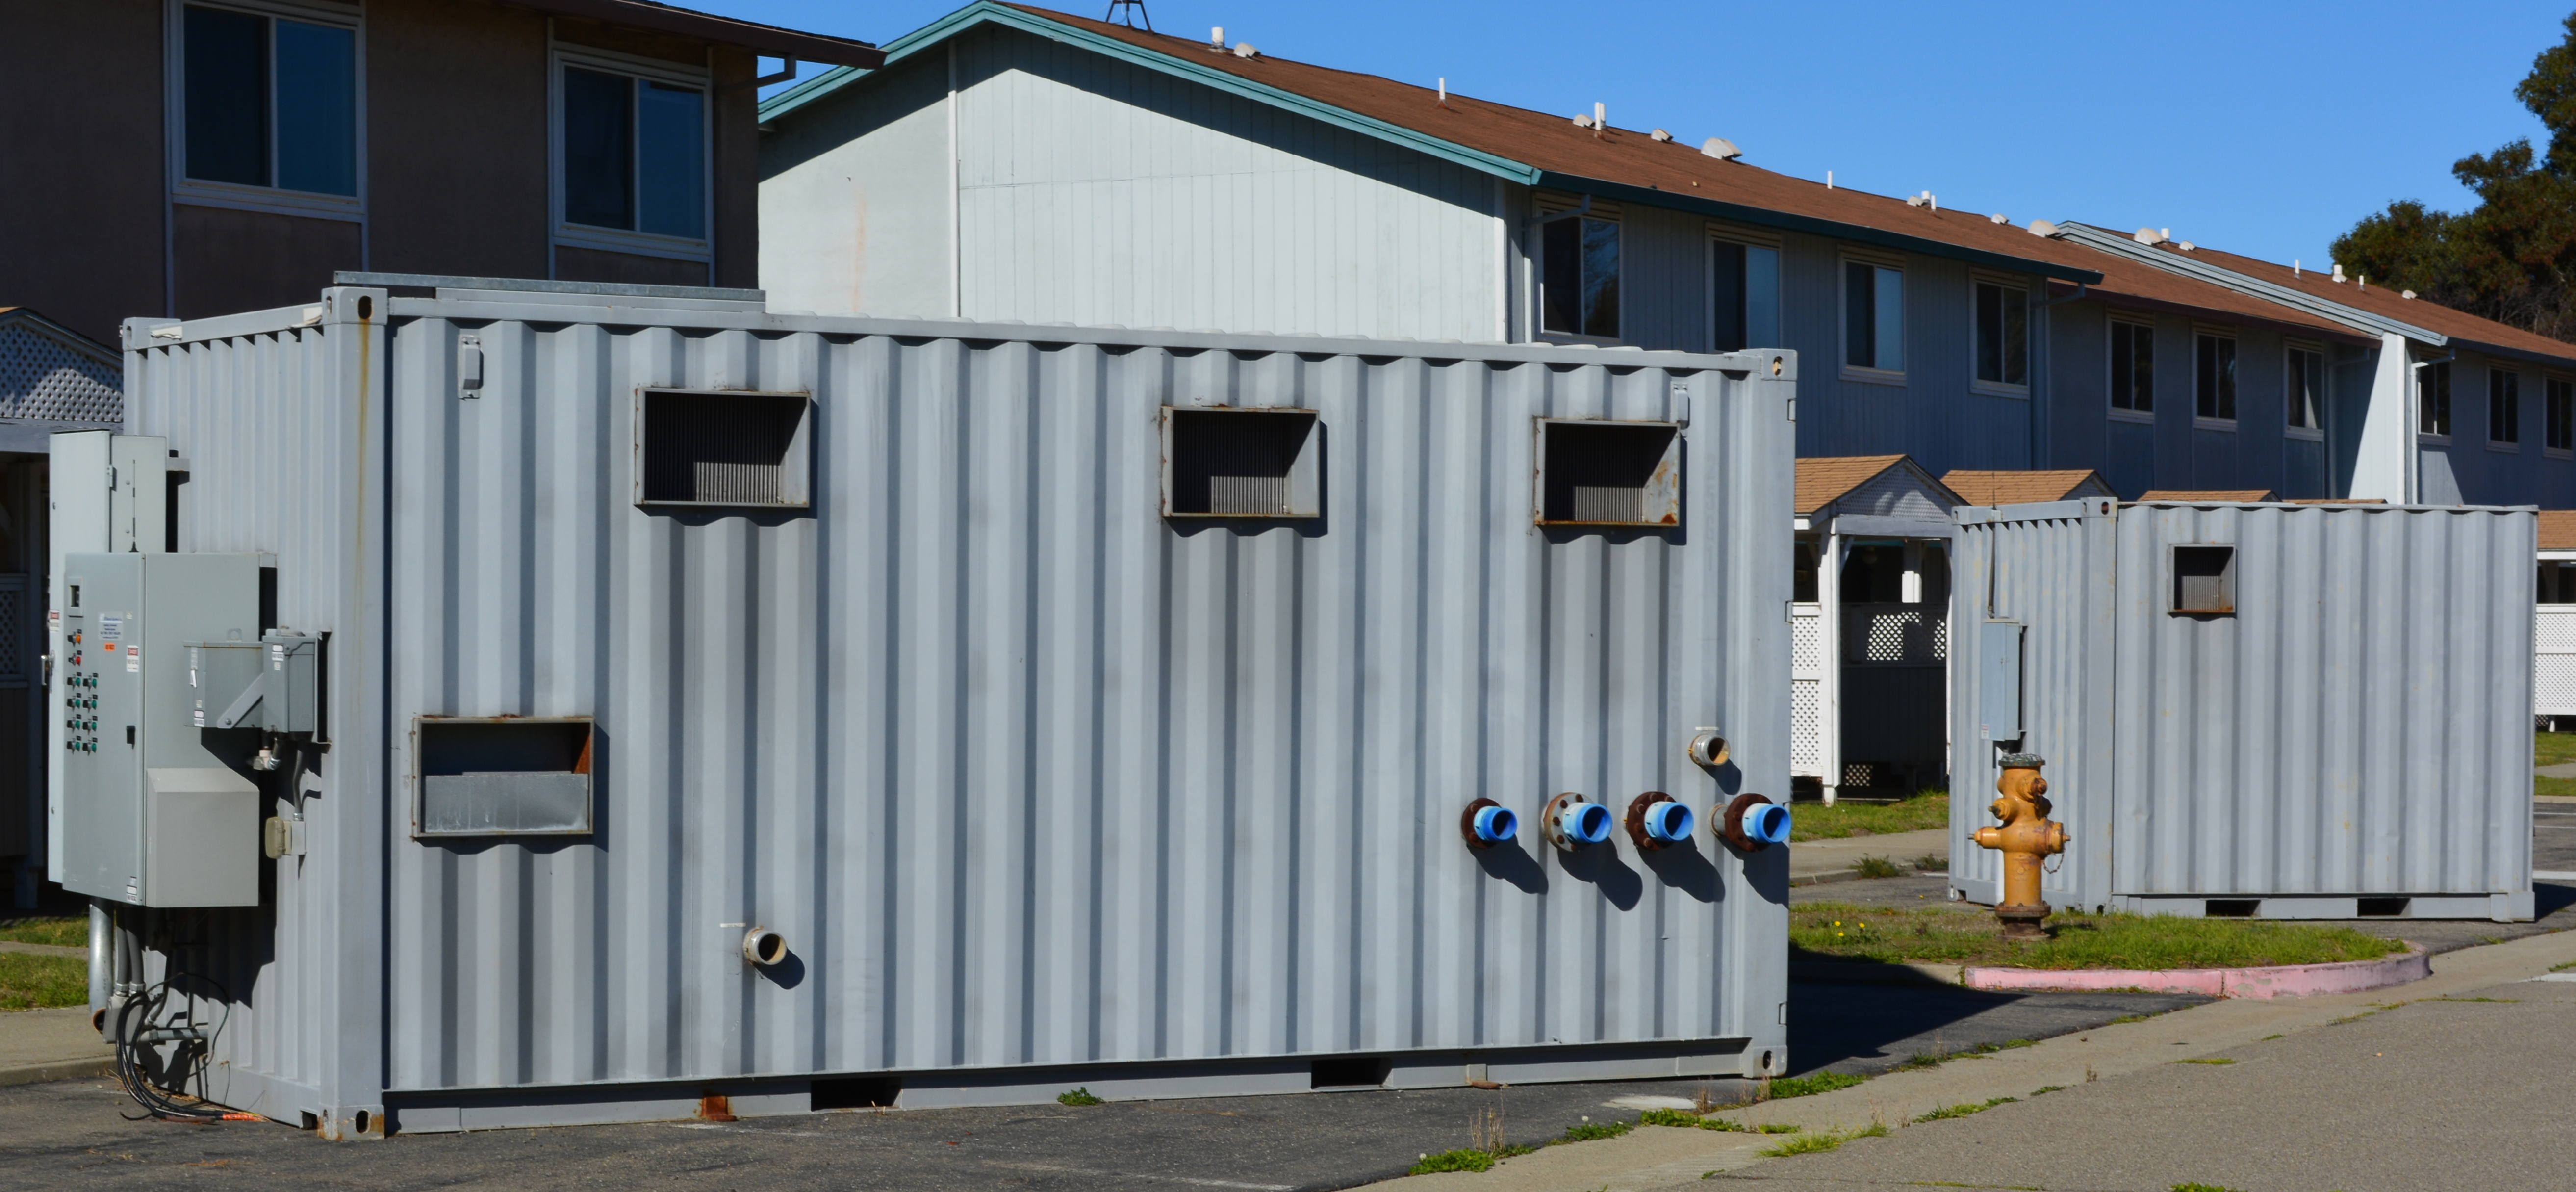 Control module with pumps for groundwater cleanup system waiting to be hauled away from North Housing.